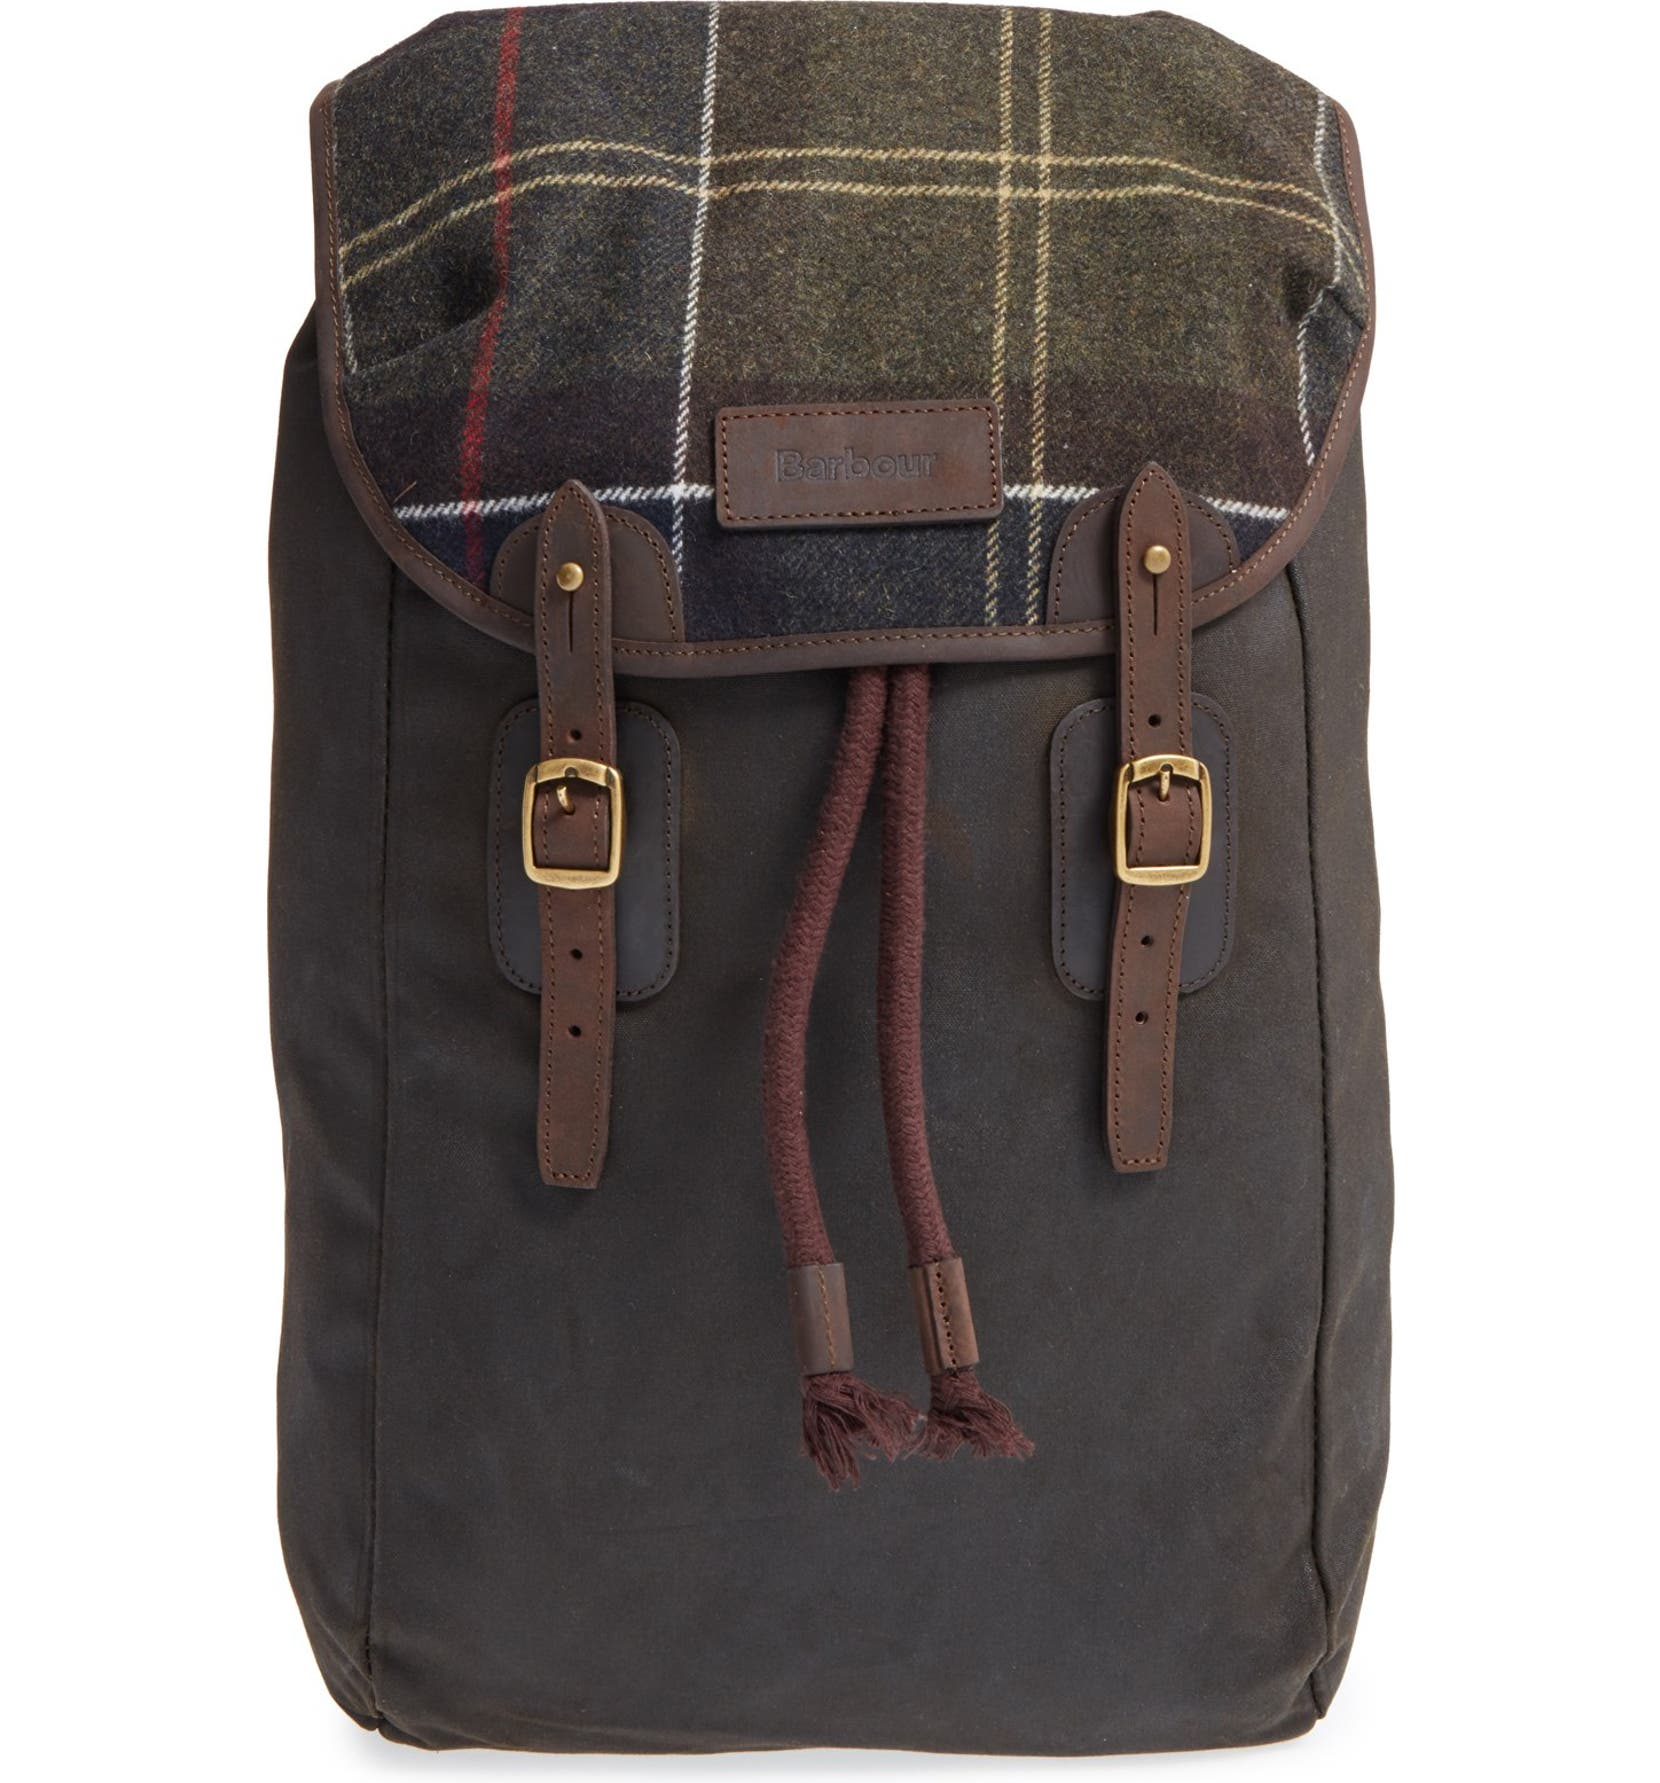 Barbour Waxed Leather And Canvas Backpack- Fenix Toulouse Handball ac27a5651dec7